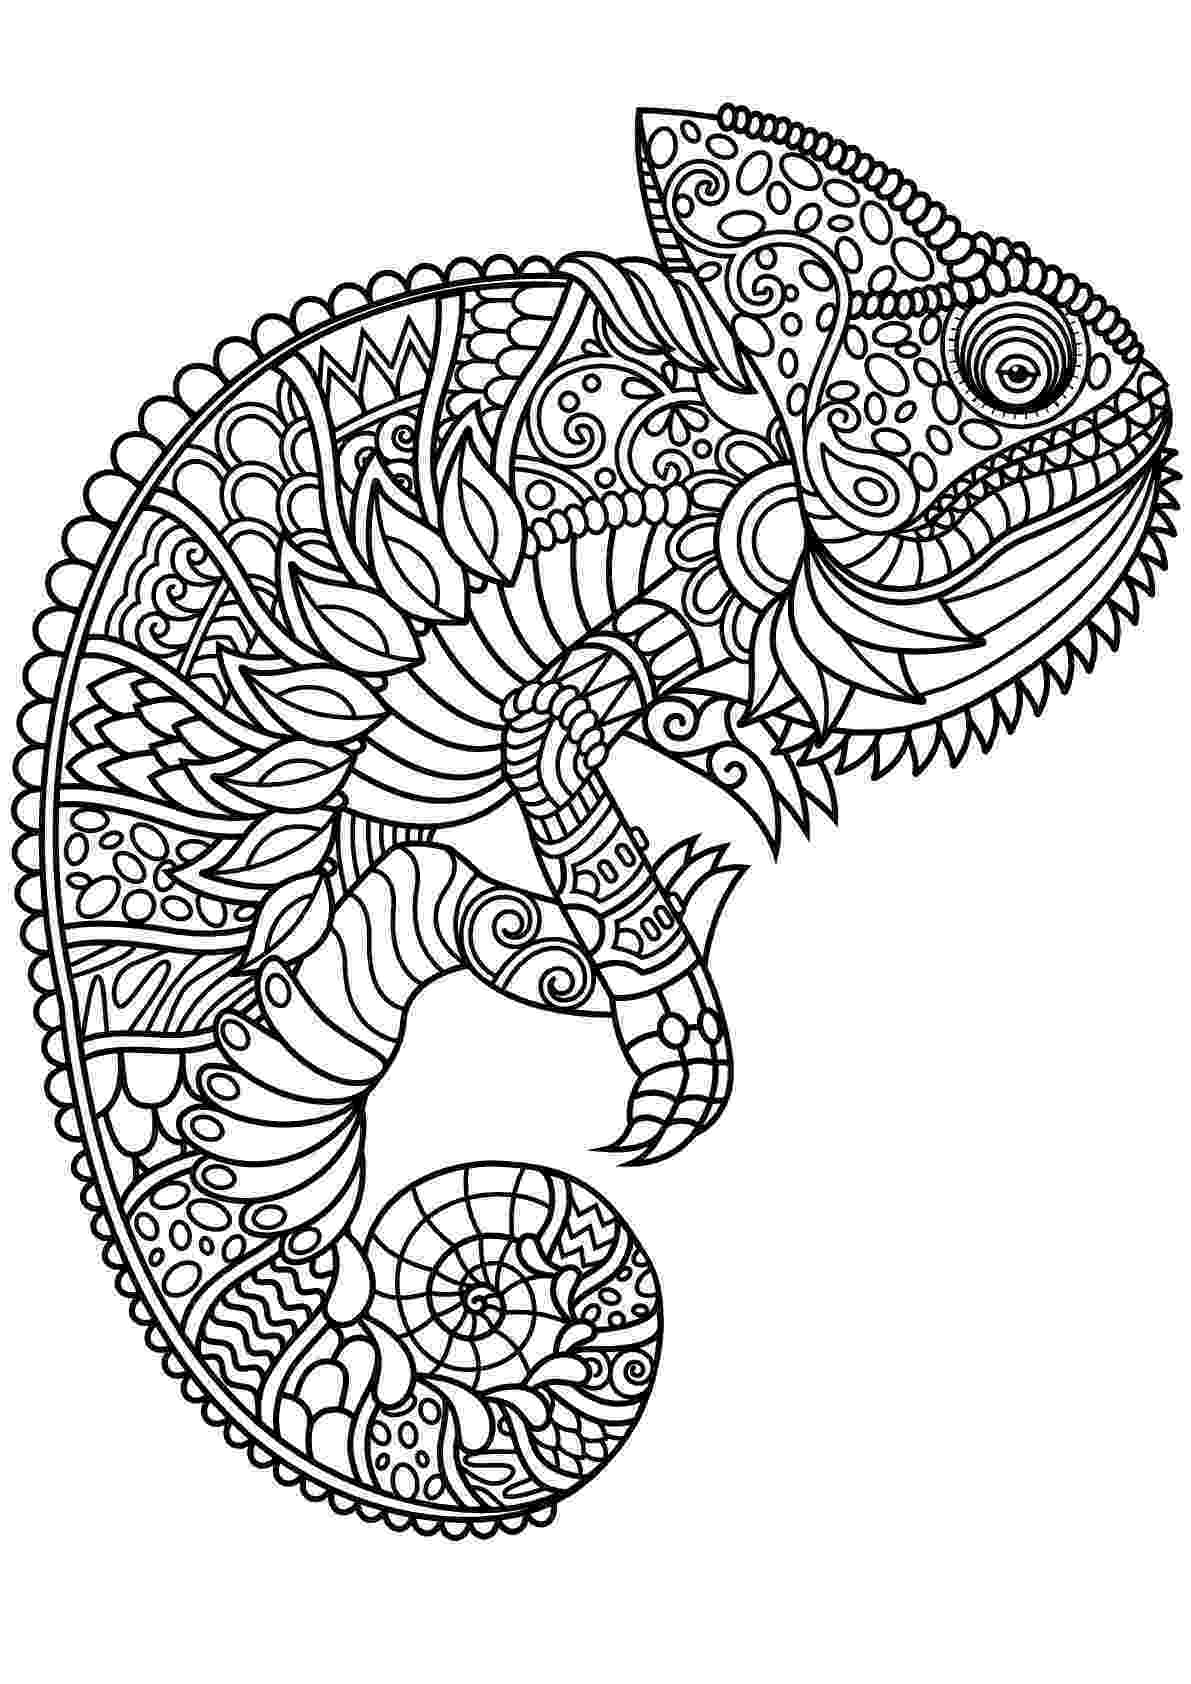 chameleon coloring pages chameleon coloring pages to download and print for free coloring pages chameleon